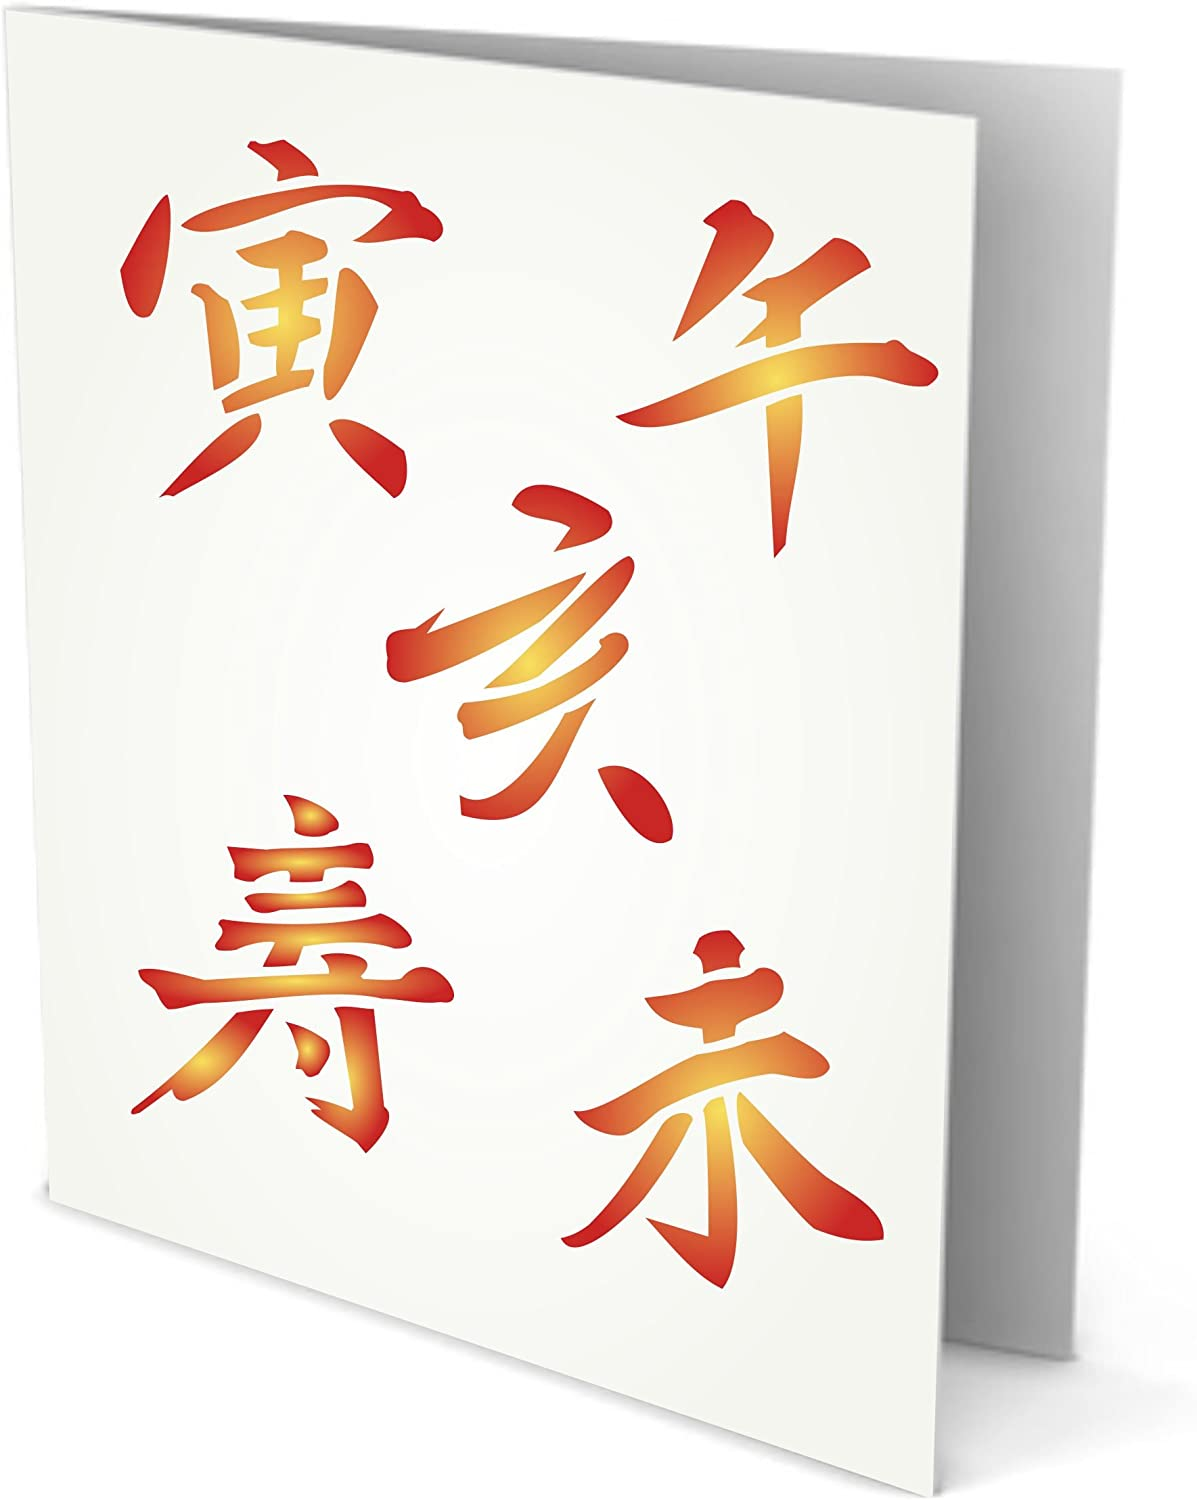 Chinese Stencil - Reusable Asian Oriental Symbol Character Pattern Wall Stencil Template 11.5 x 11.5cm S Use on Paper Projects Scrapbook Journal Walls Floors Fabric Furniture Glass Wood etc.